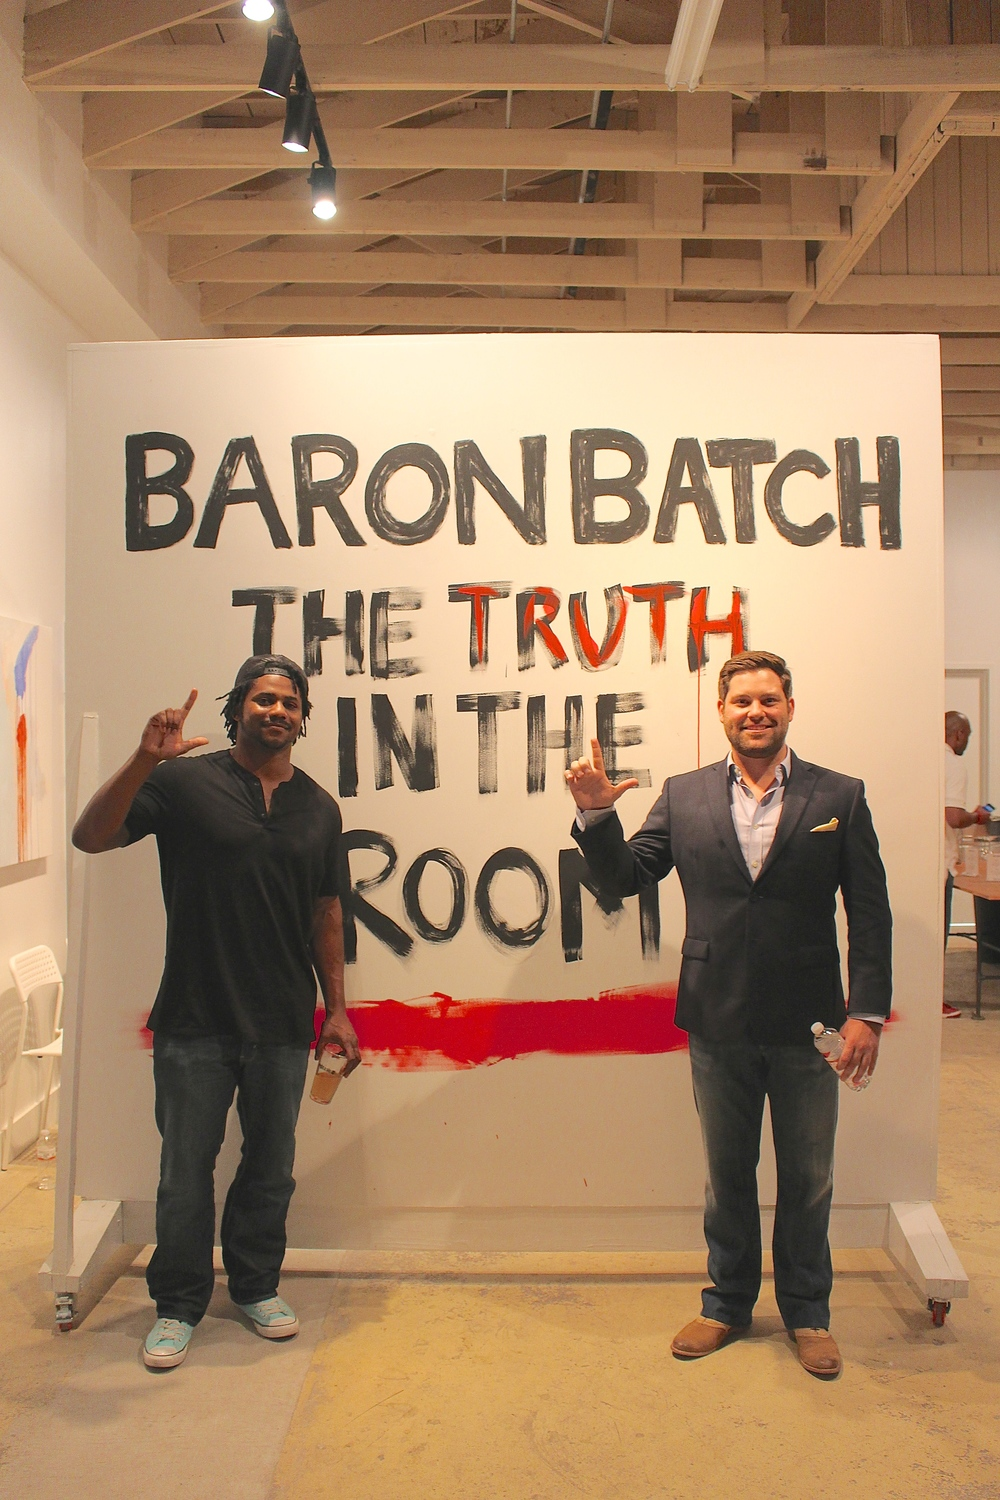 Baron Batch Pop-Up Show